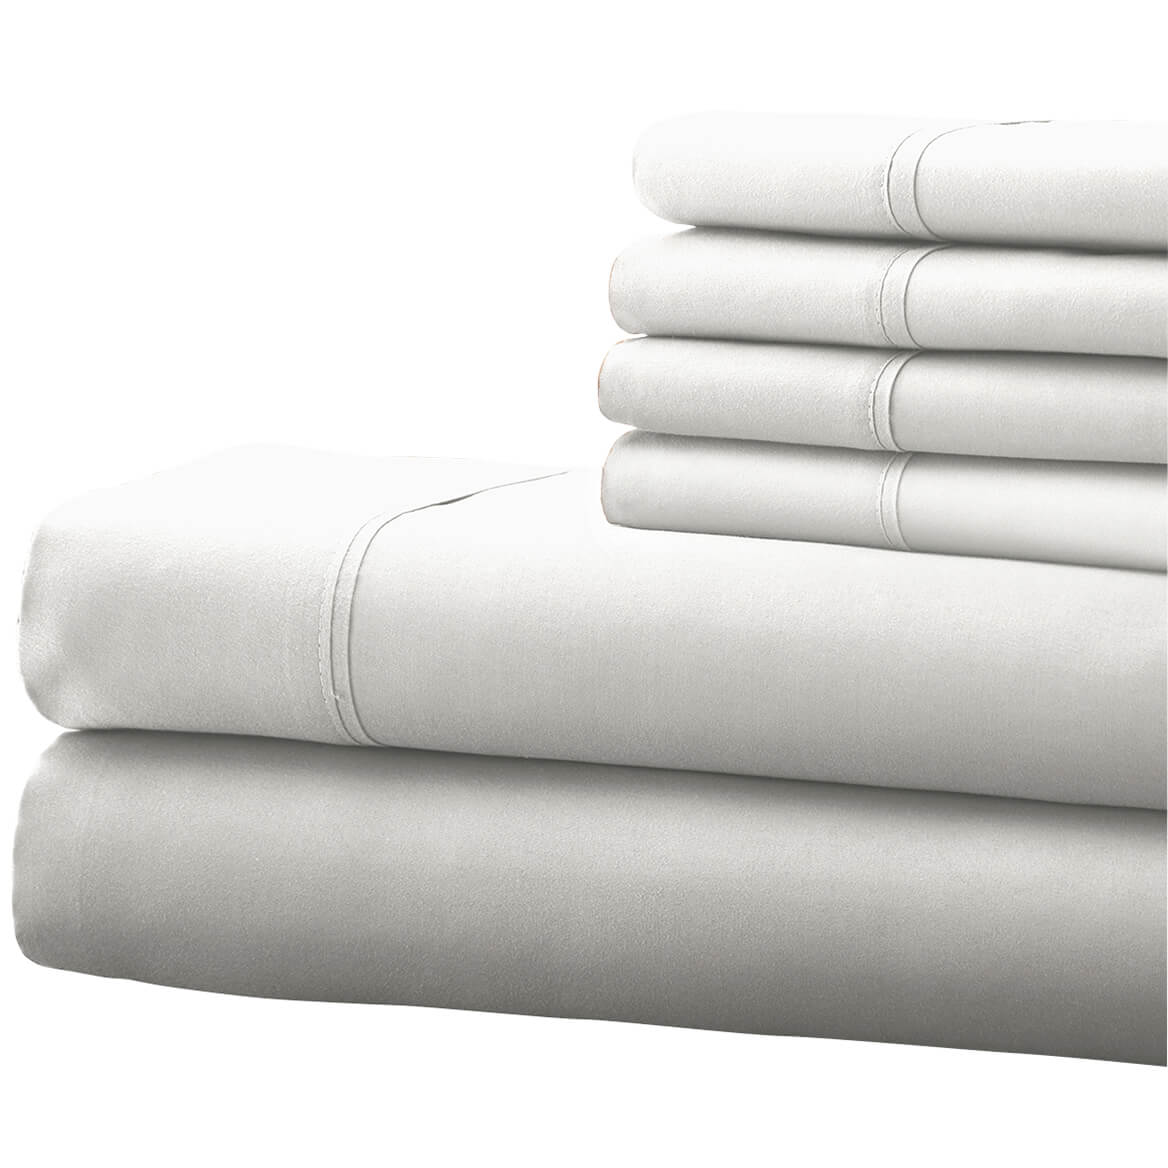 Hotel 5th Ave 4pc Microfiber Sheet Set - White